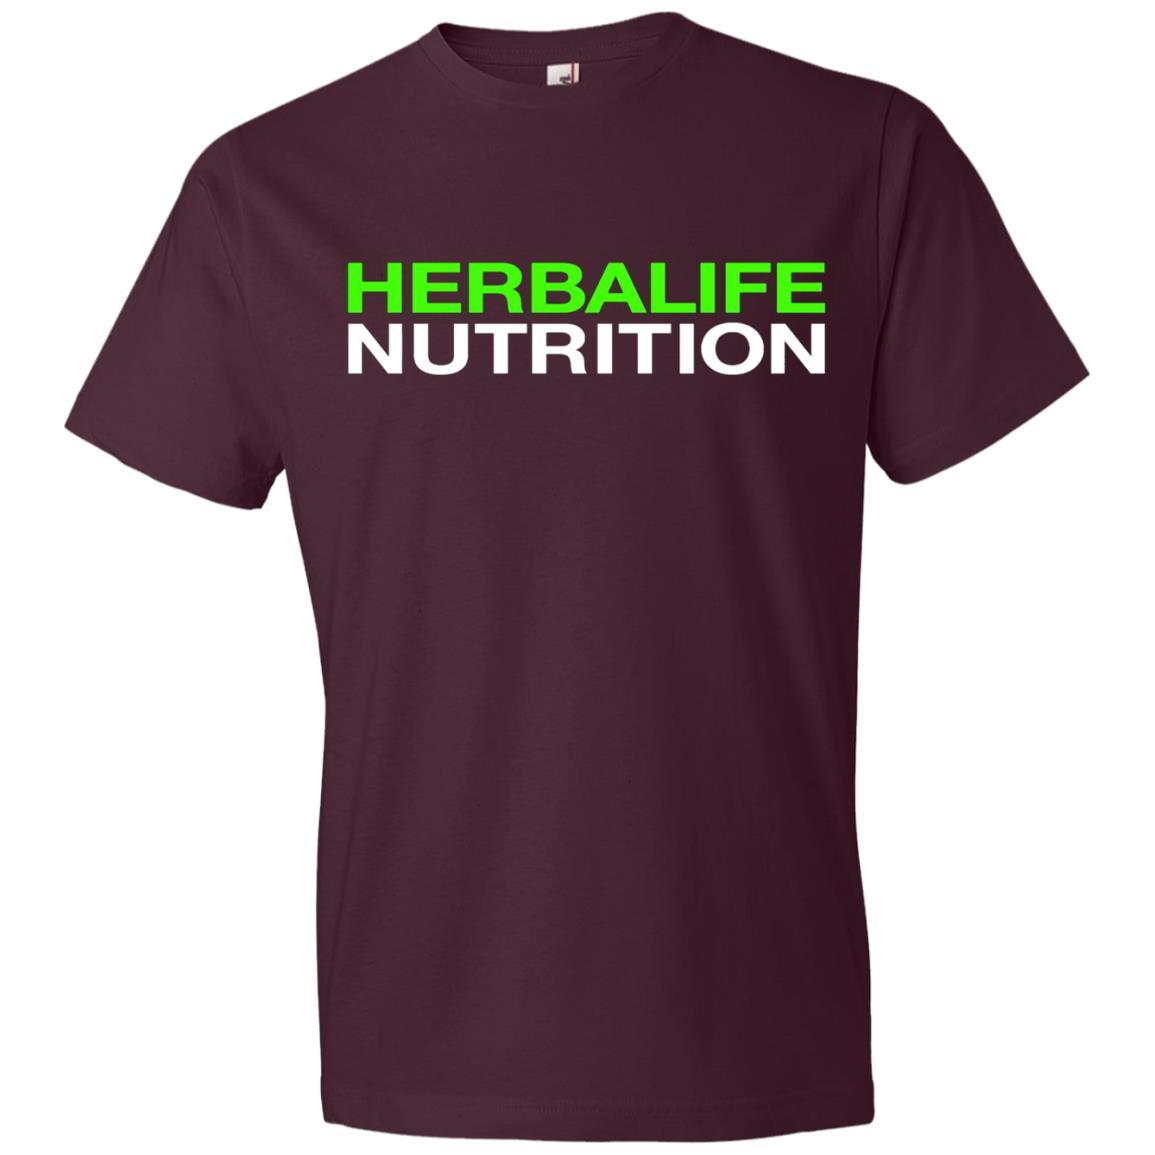 HERBALIFE NUTRITION - Anvil Lightweight T-Shirt Style / Color / Size